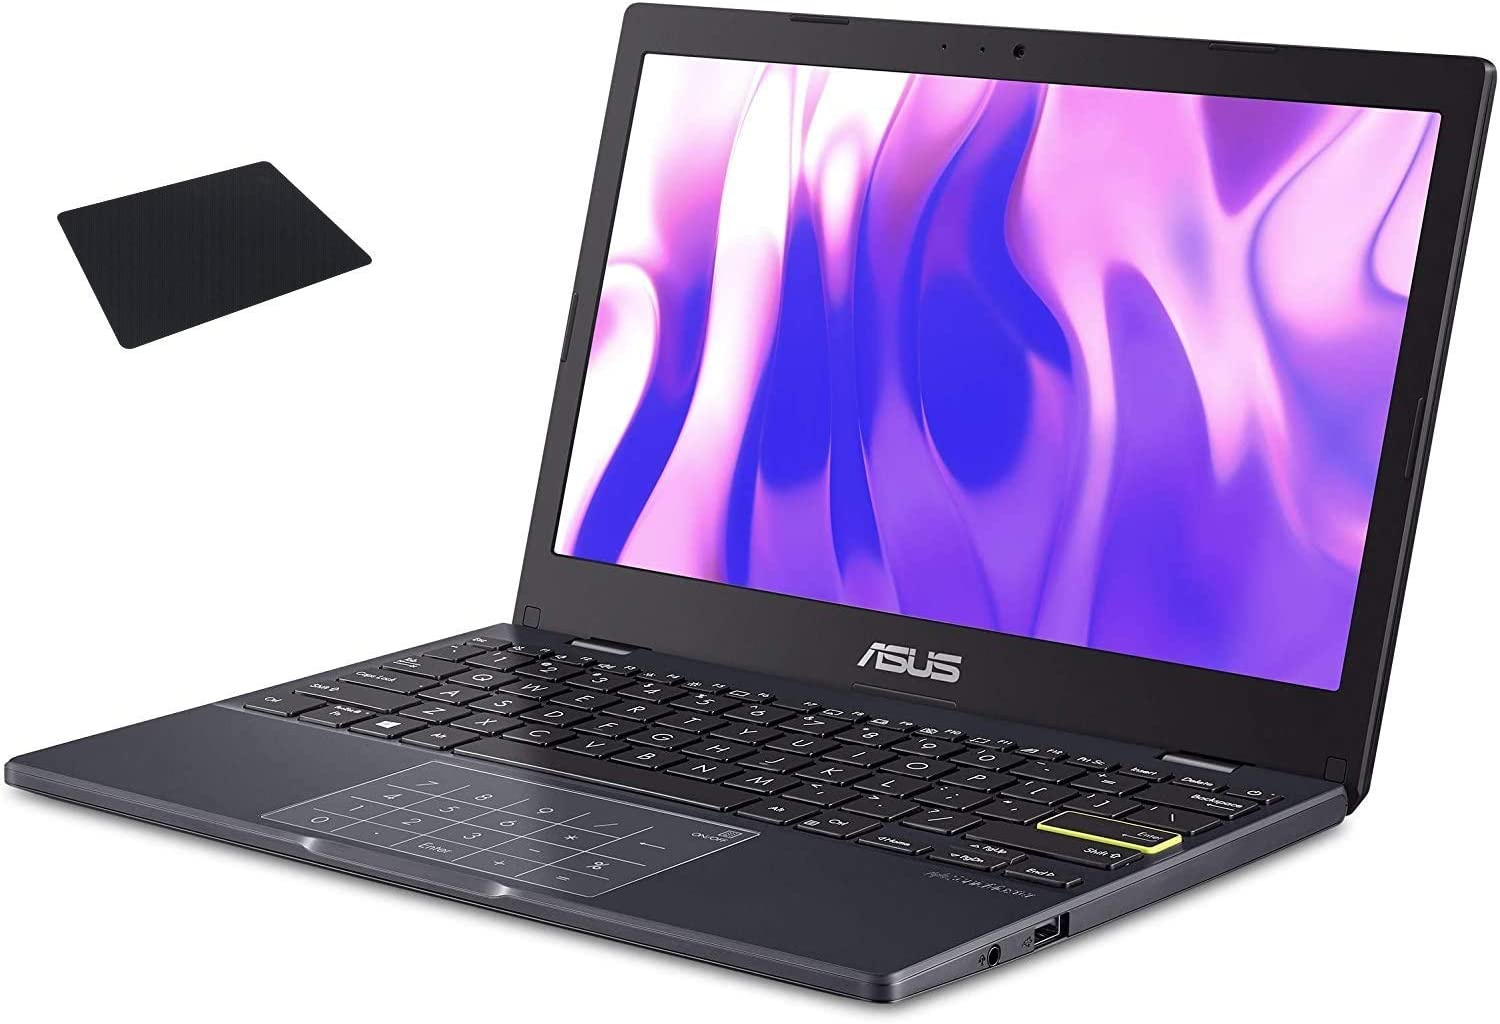 """ASUS L210 Laptop 11.6"""" HD Intel N4020 4GB RAM 64GB eMMC Flash Storage, One Year Office 365 Personal, L210MA-DB01 with Mouse Pad"""